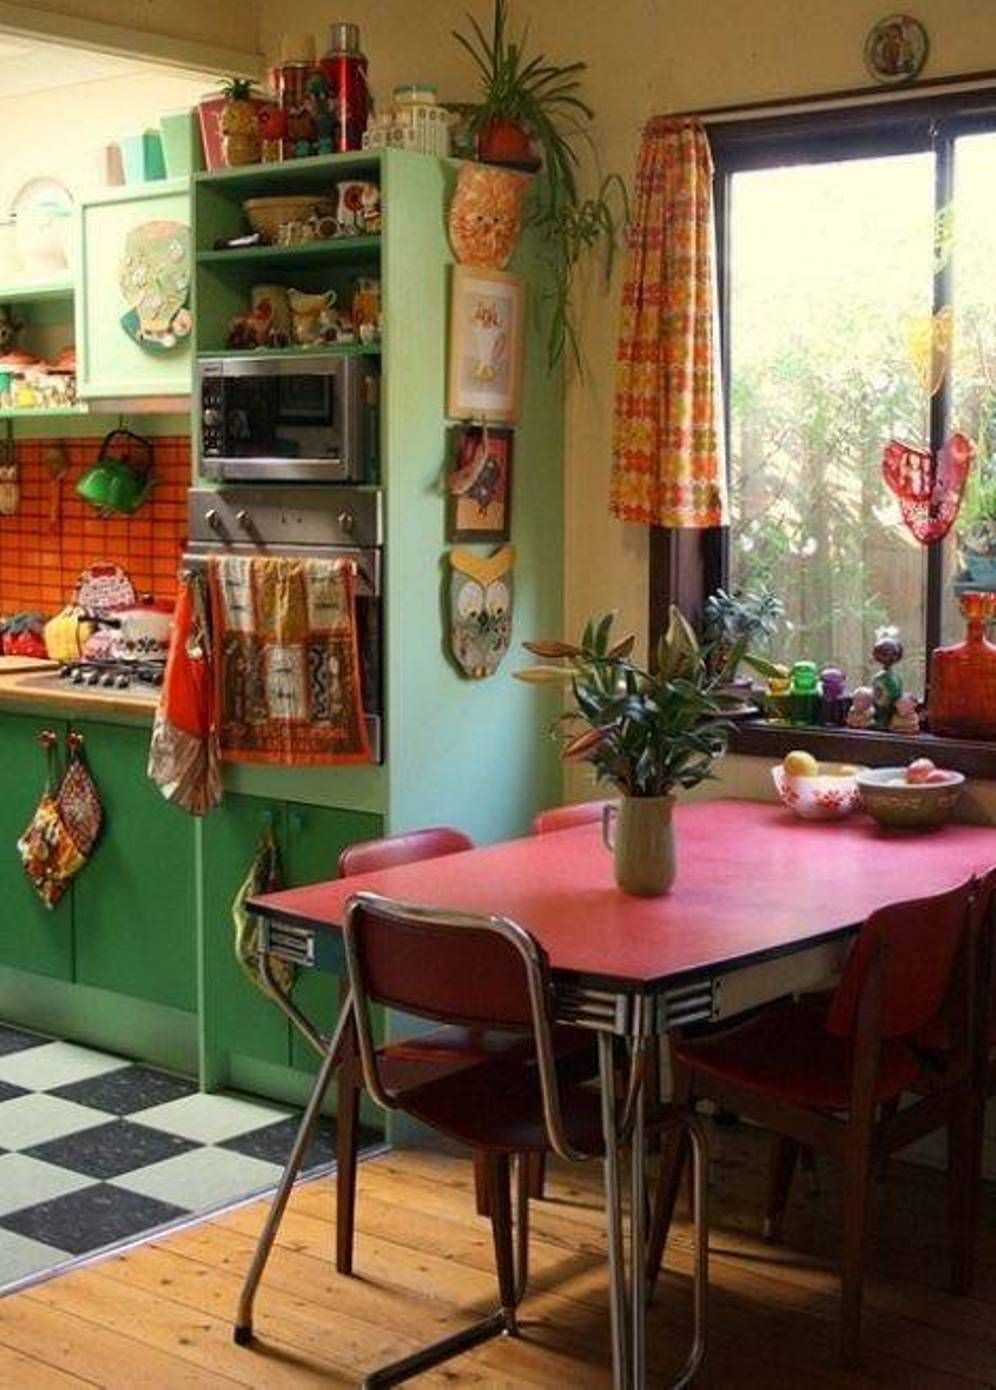 Vintage home interior pictures interior bohemian style for Vintage home decor